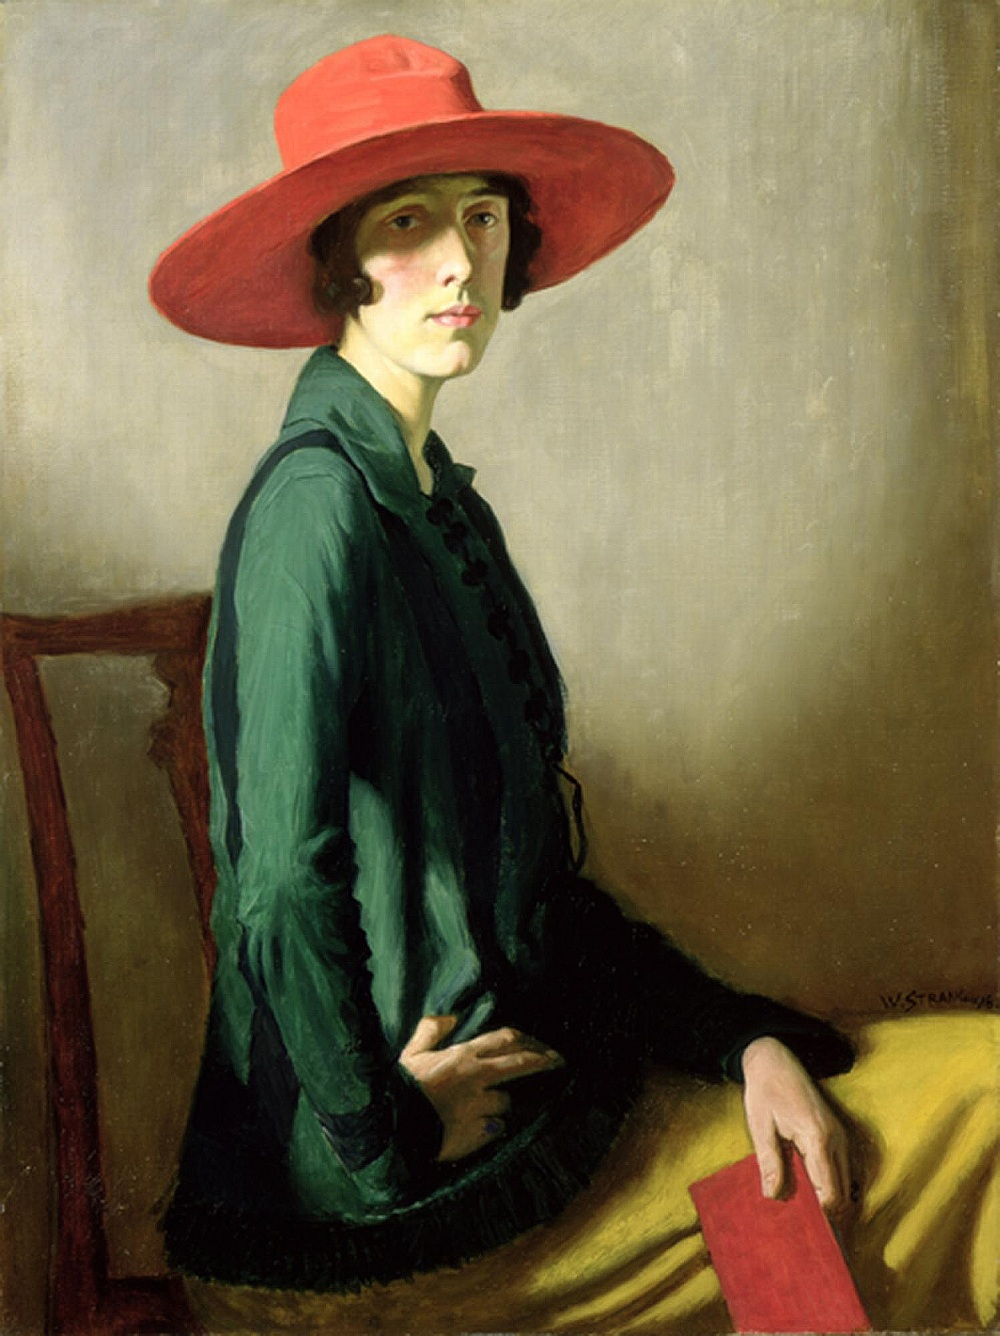 Lady with a Red Hat (Portrait of Vita Sackville-West) (1918) by William Strang